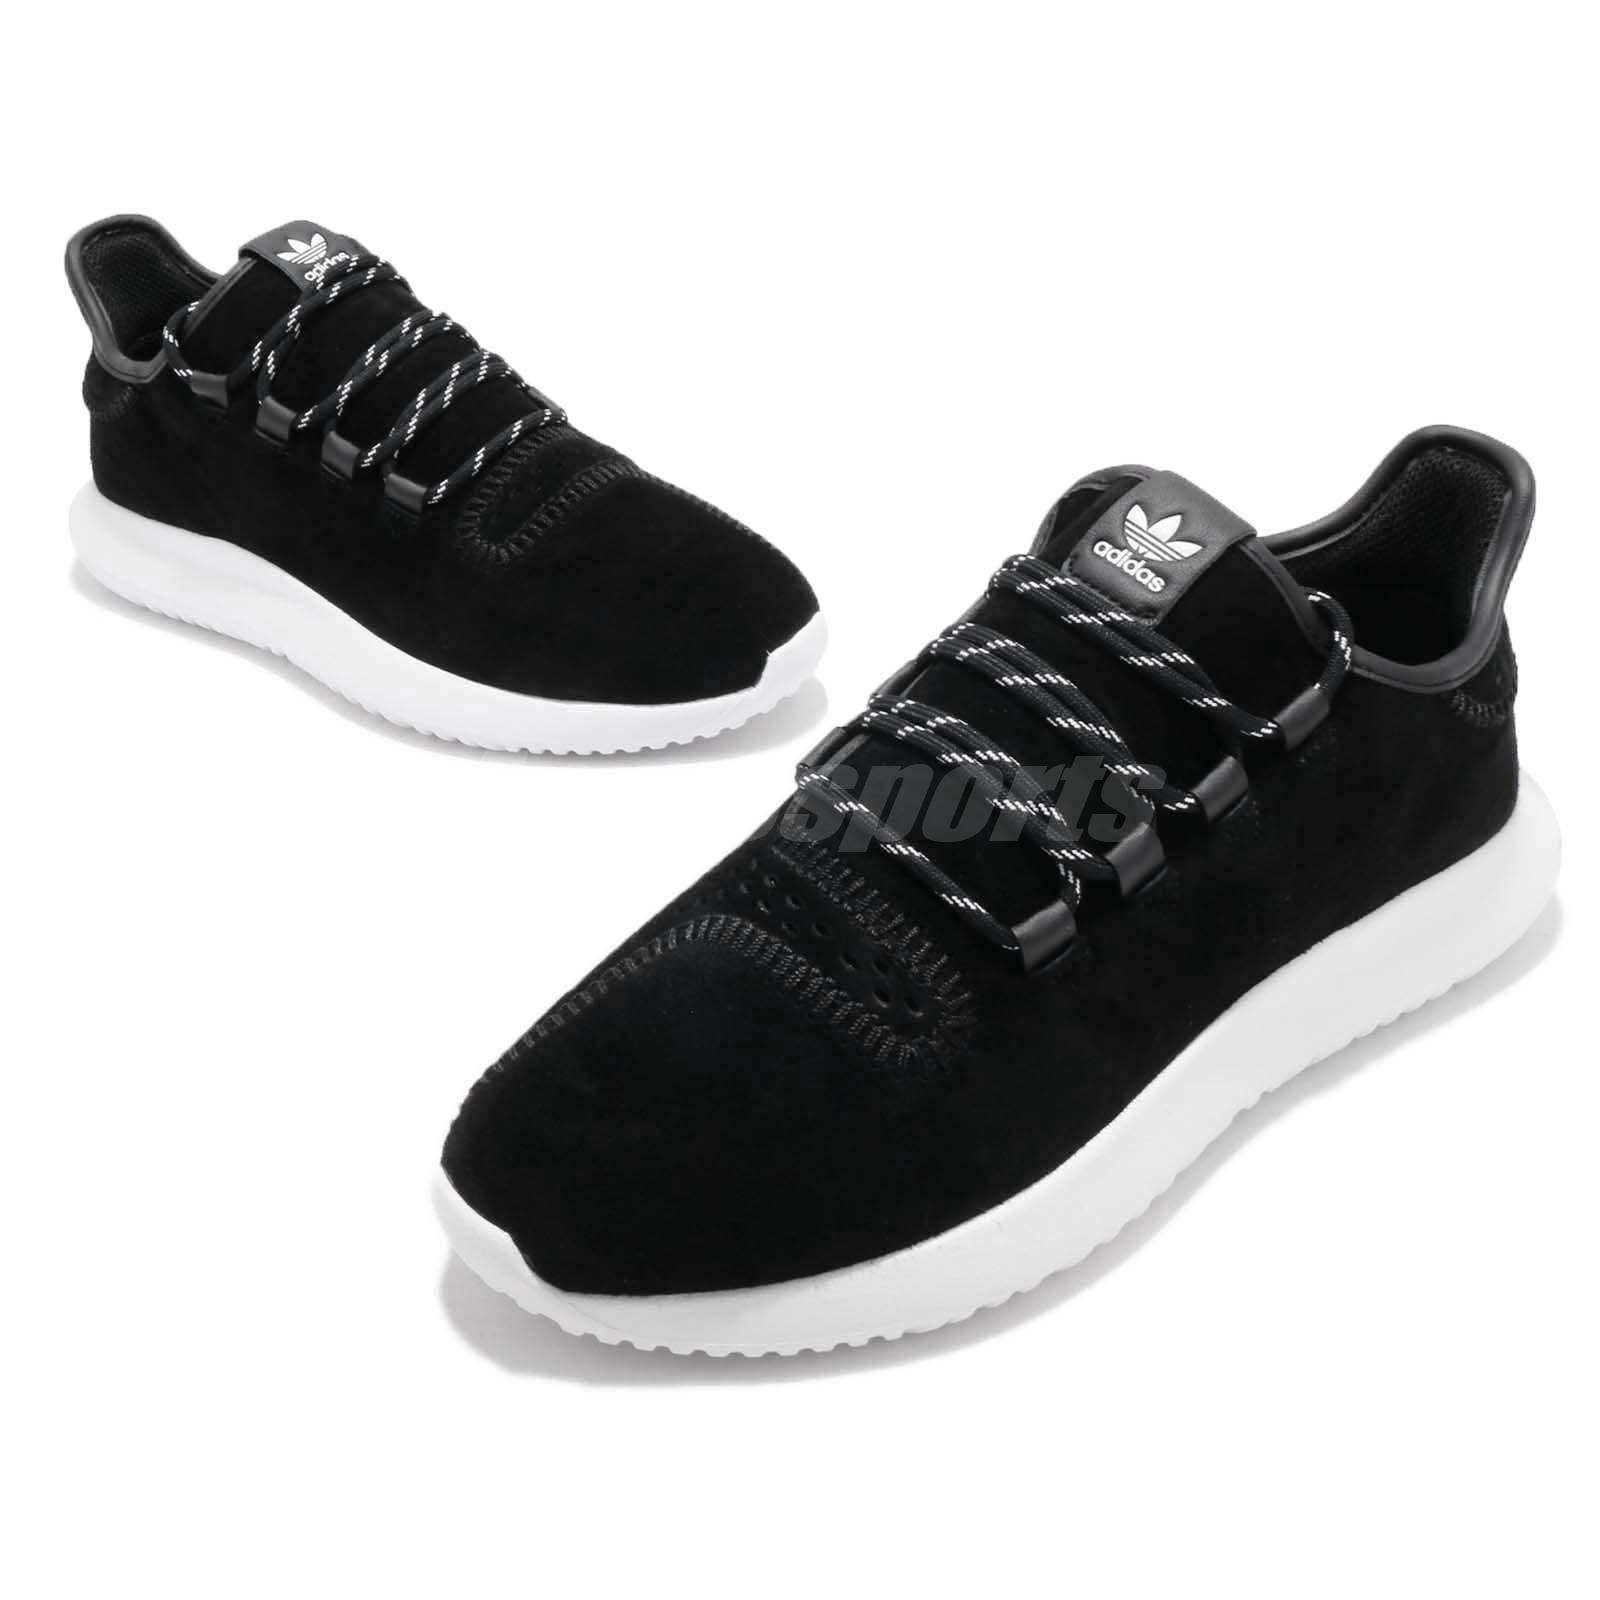 reputable site 031f8 6c9bb Details about adidas Originals Tubular Shadow Black White Men Casual Shoes  Sneakers CQ0933